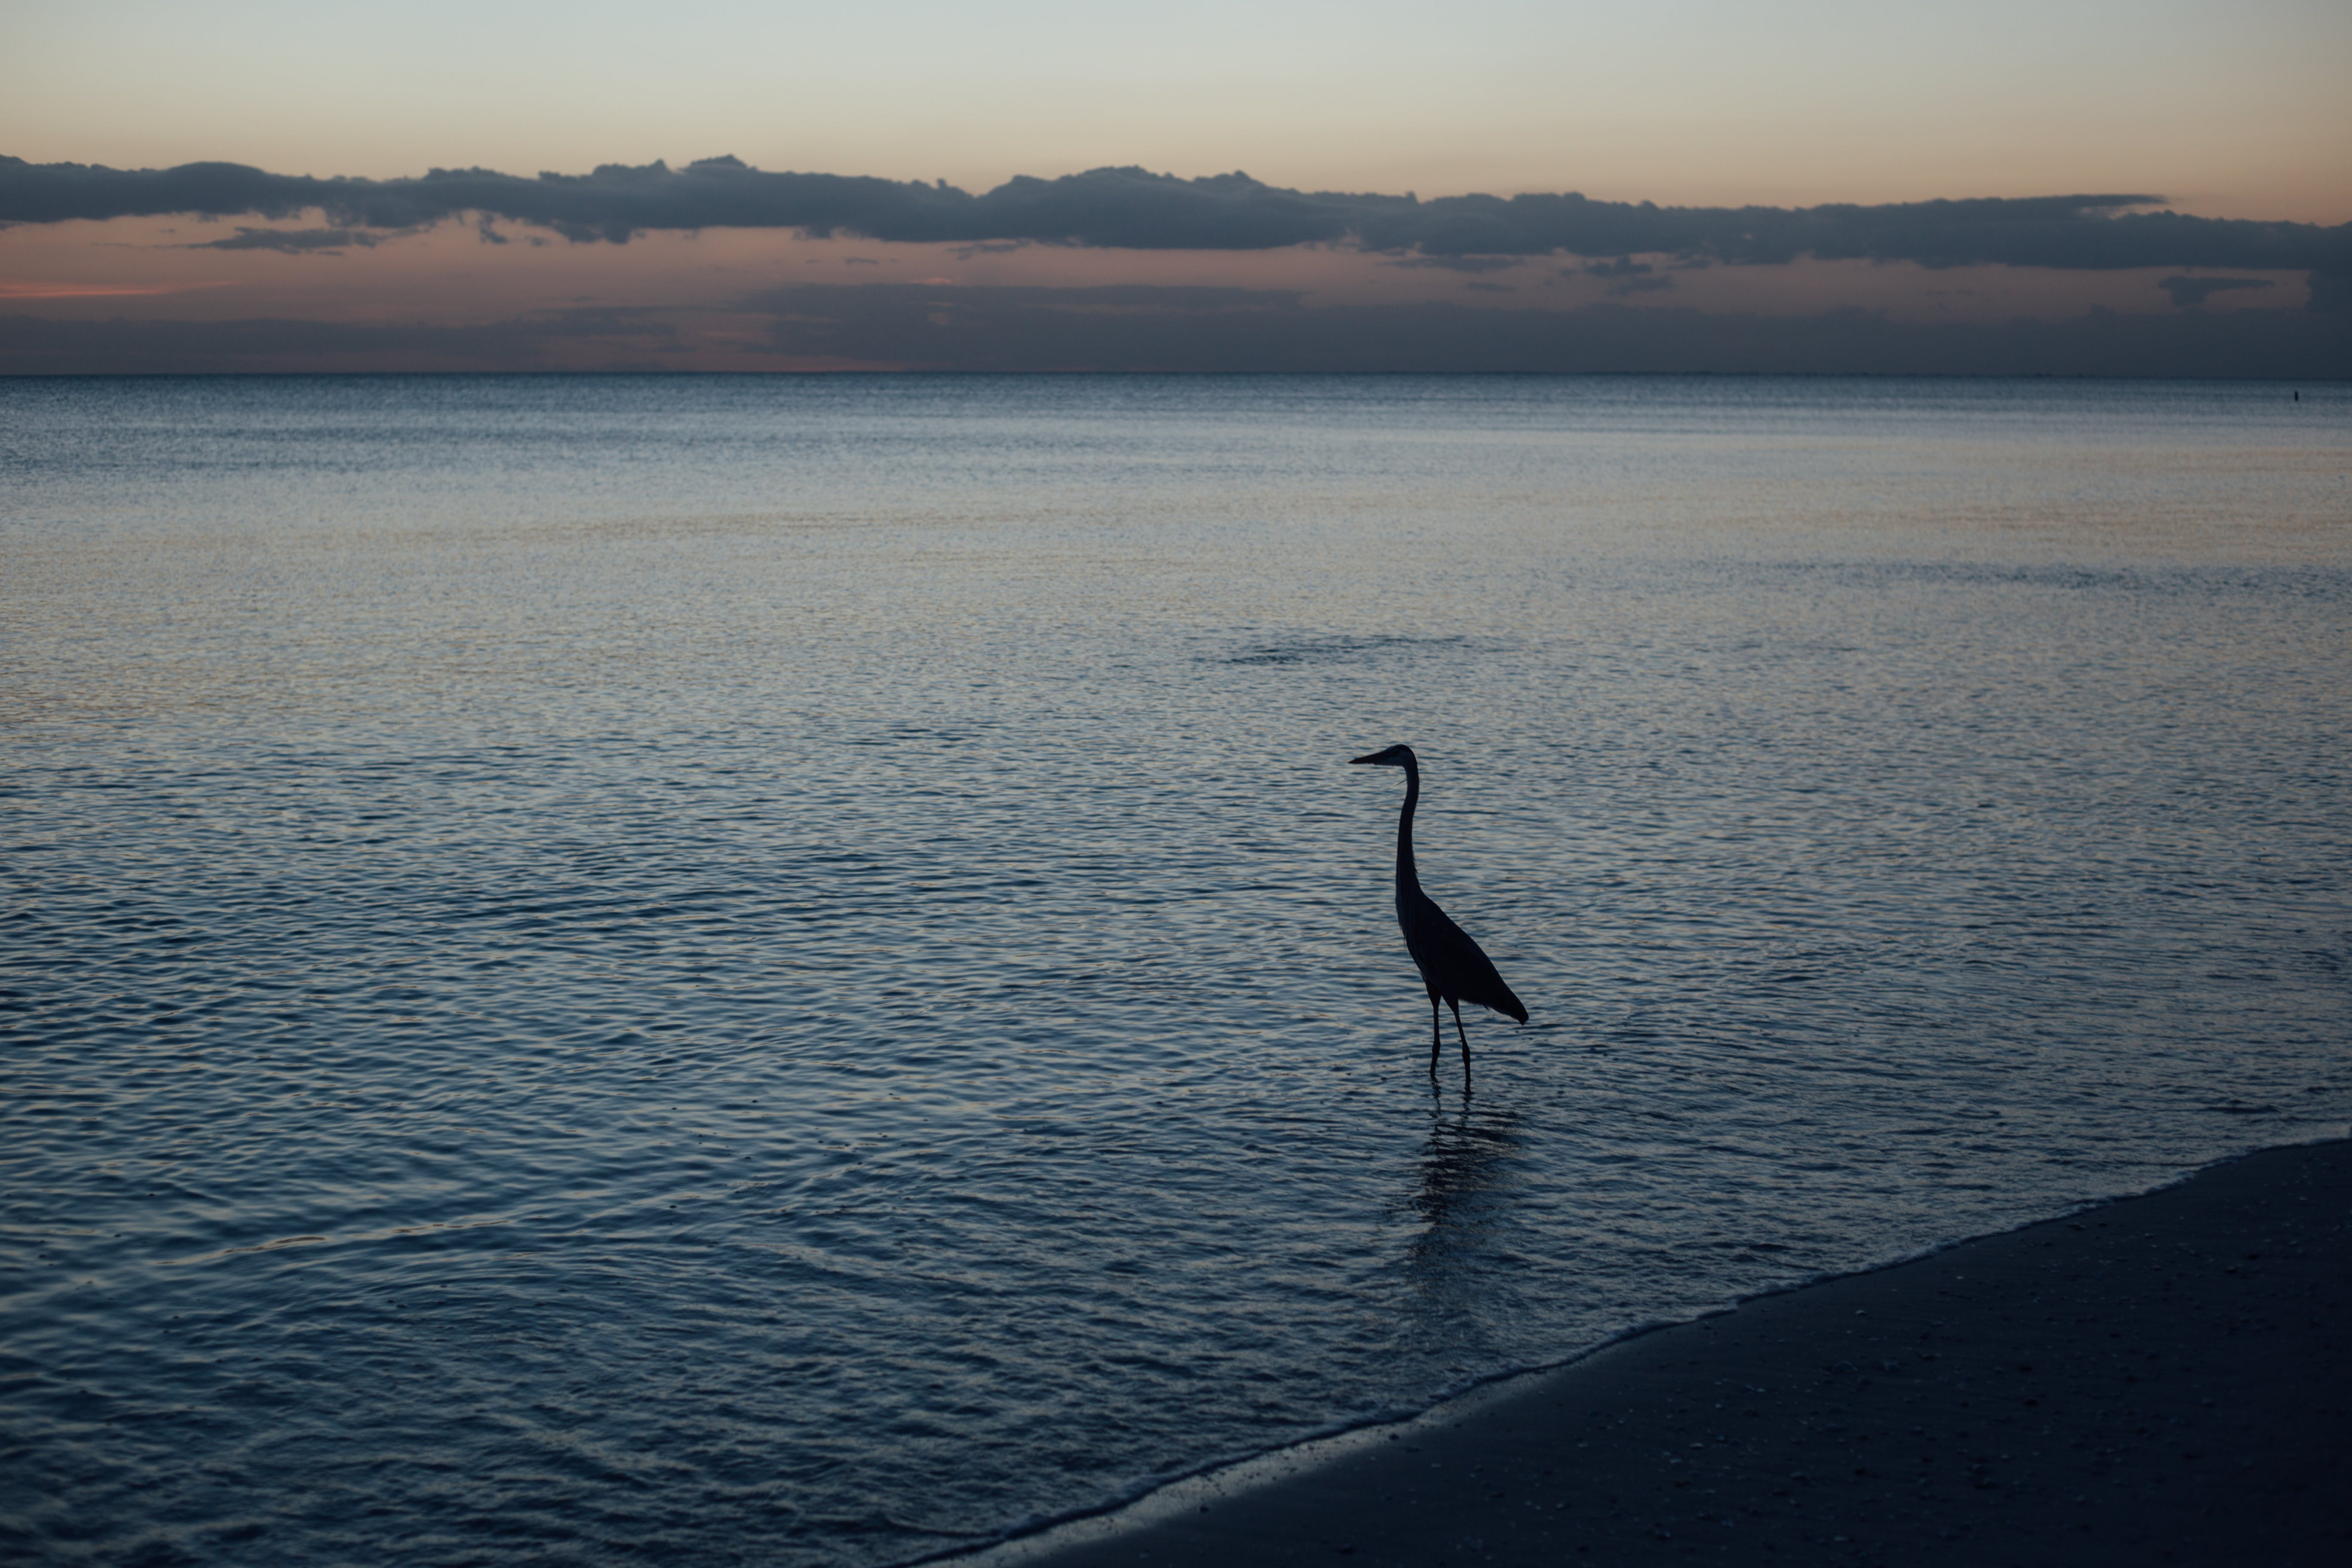 Silhouette of Duck on Shore during Sunset